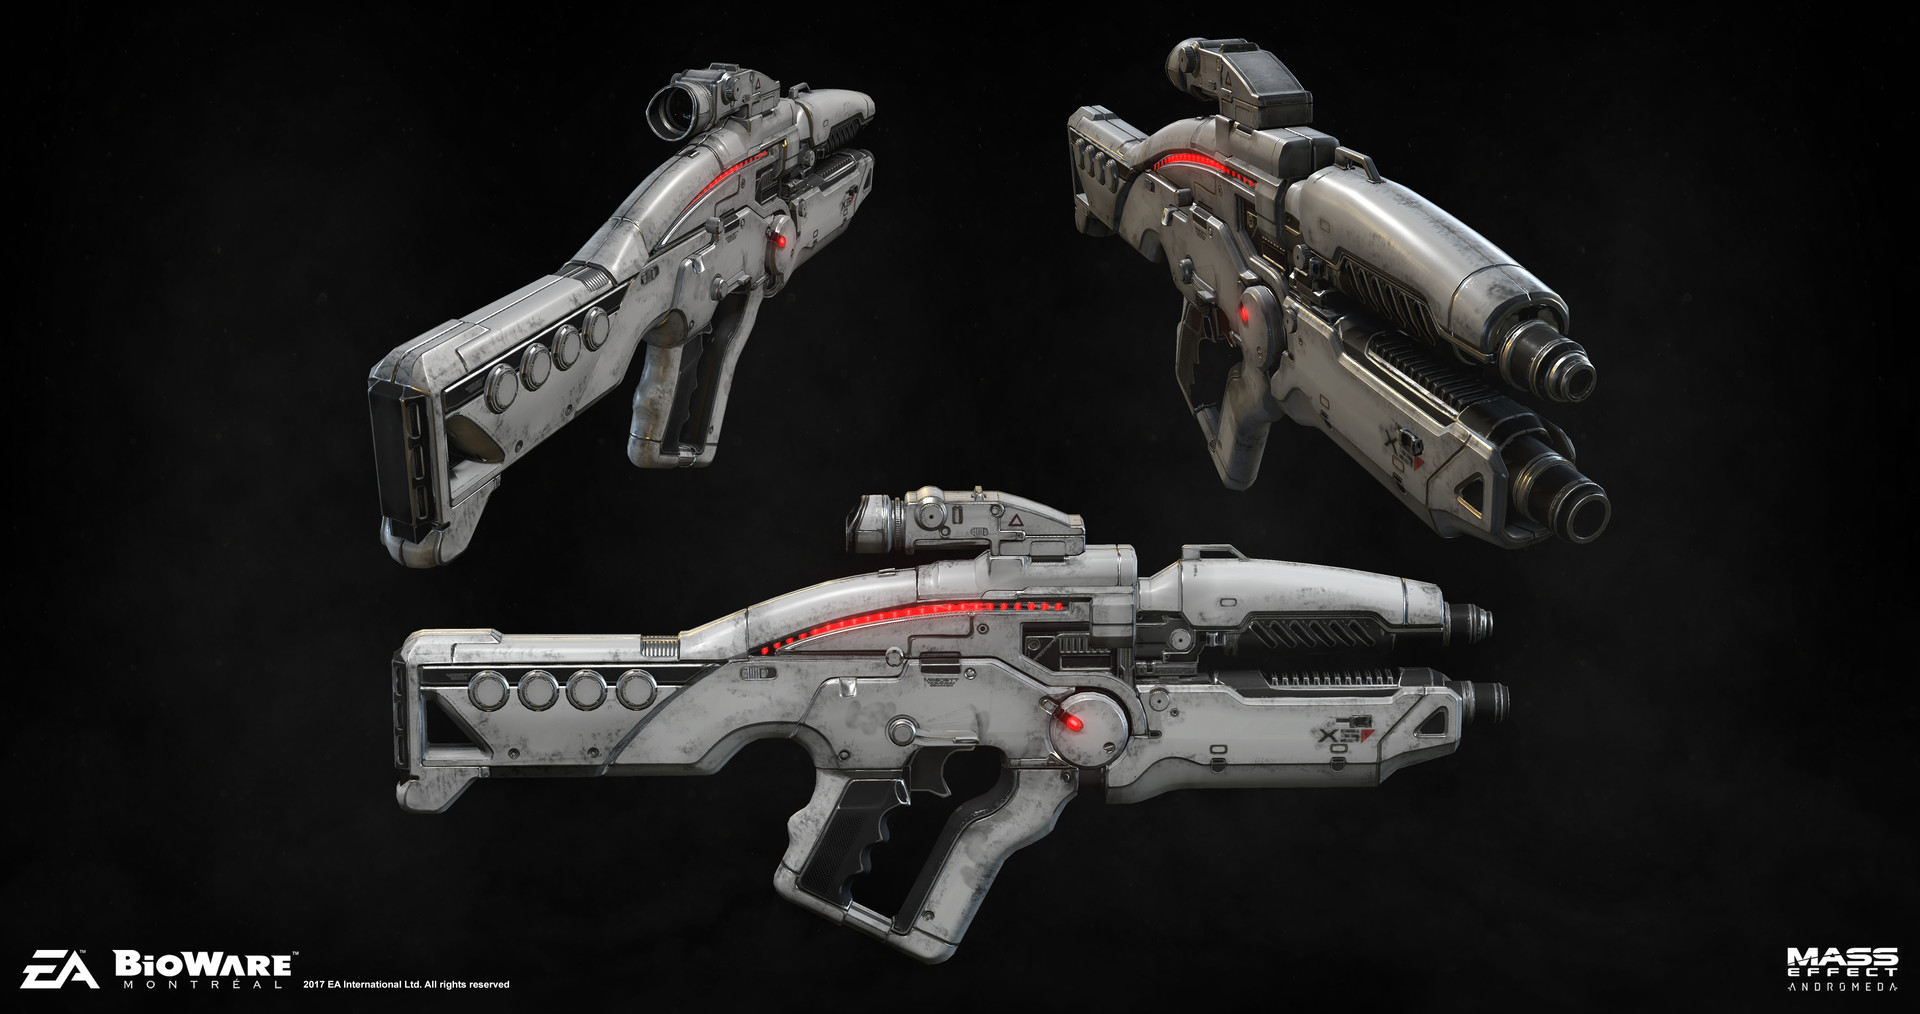 X5 Ghost Mass Effect Andromeda: More Popular Weapon Designs: More Ergonomic, More